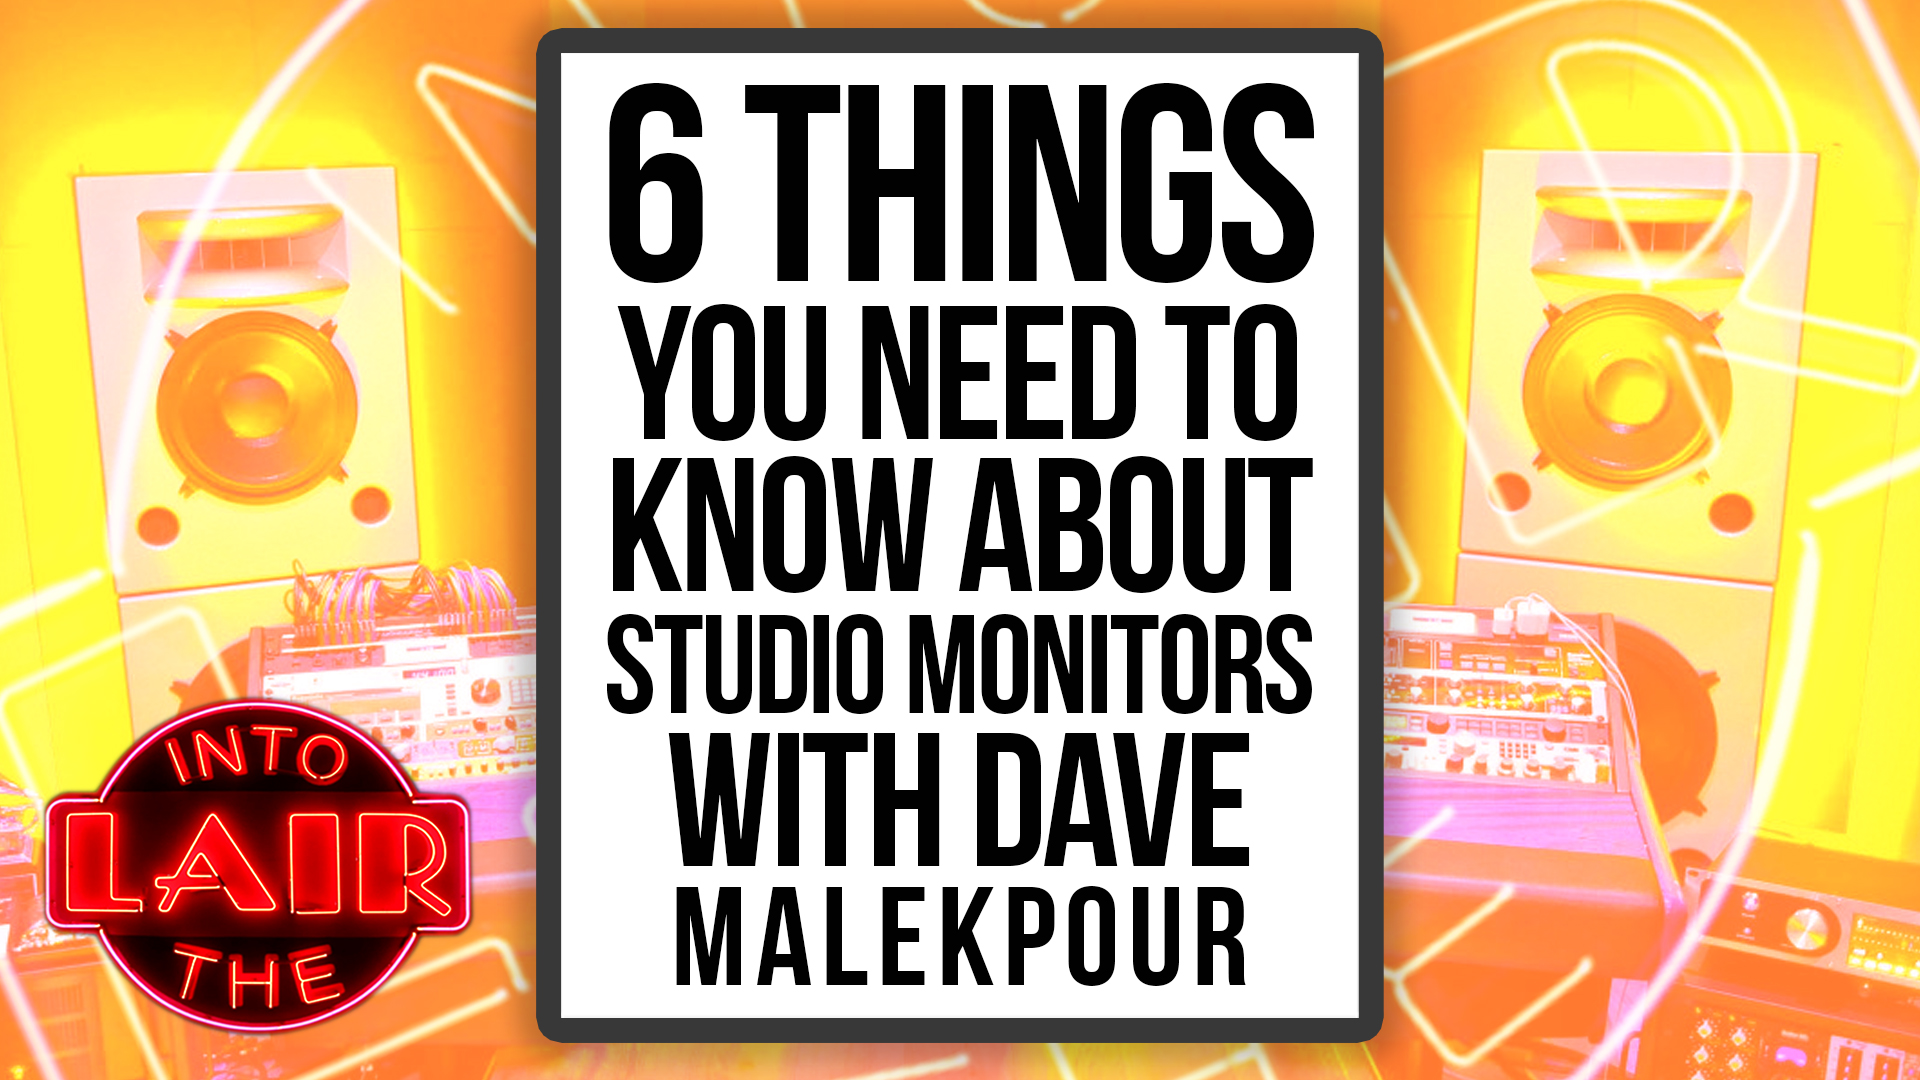 6 Things You Need to Know About Studio Monitors